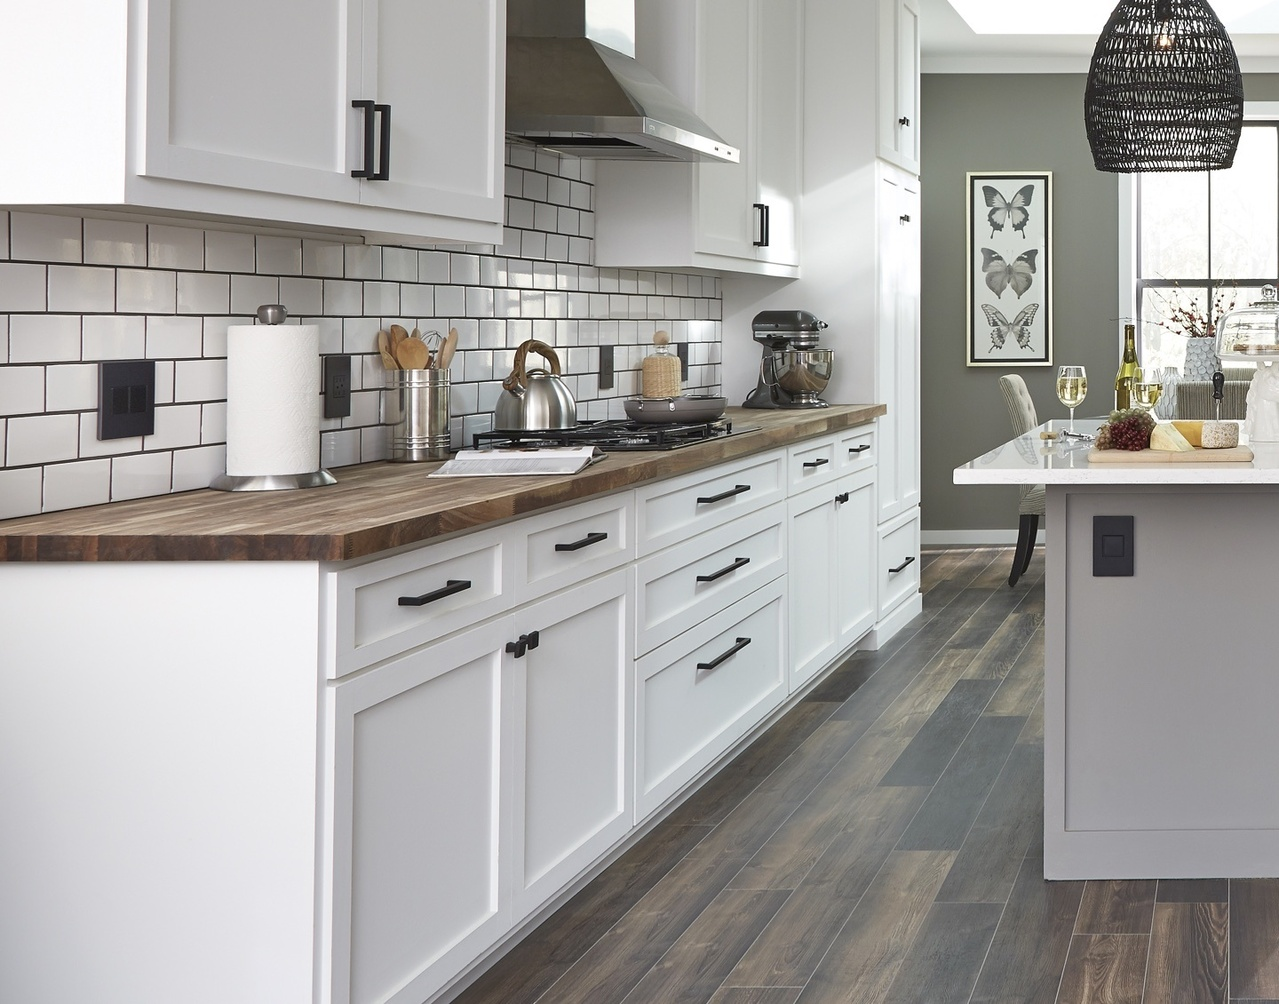 Newly renovated kitchen with designer switches and outlets from the radiant and adorne Collections by Legrand